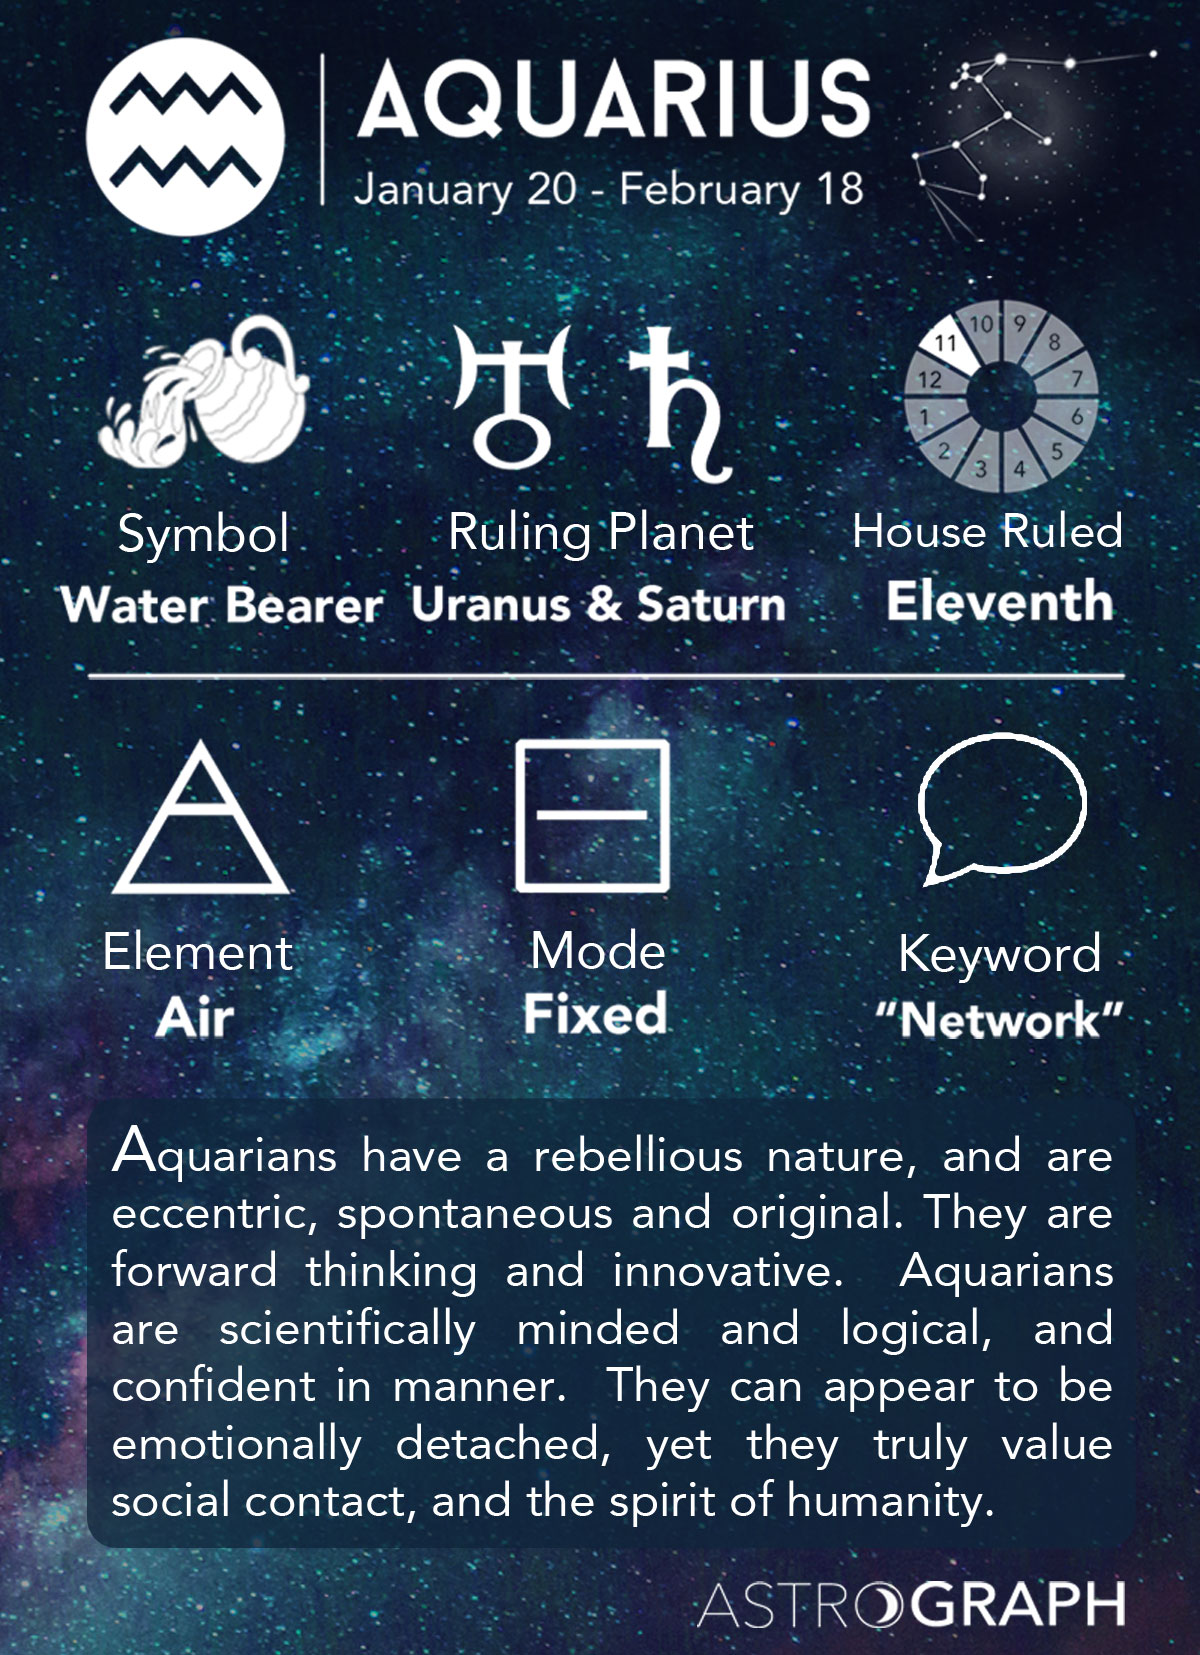 House Ruled by Aquarius: Eleventh Aquarius Polarity: Positive Most Compatible Zodiac Signs: Libra